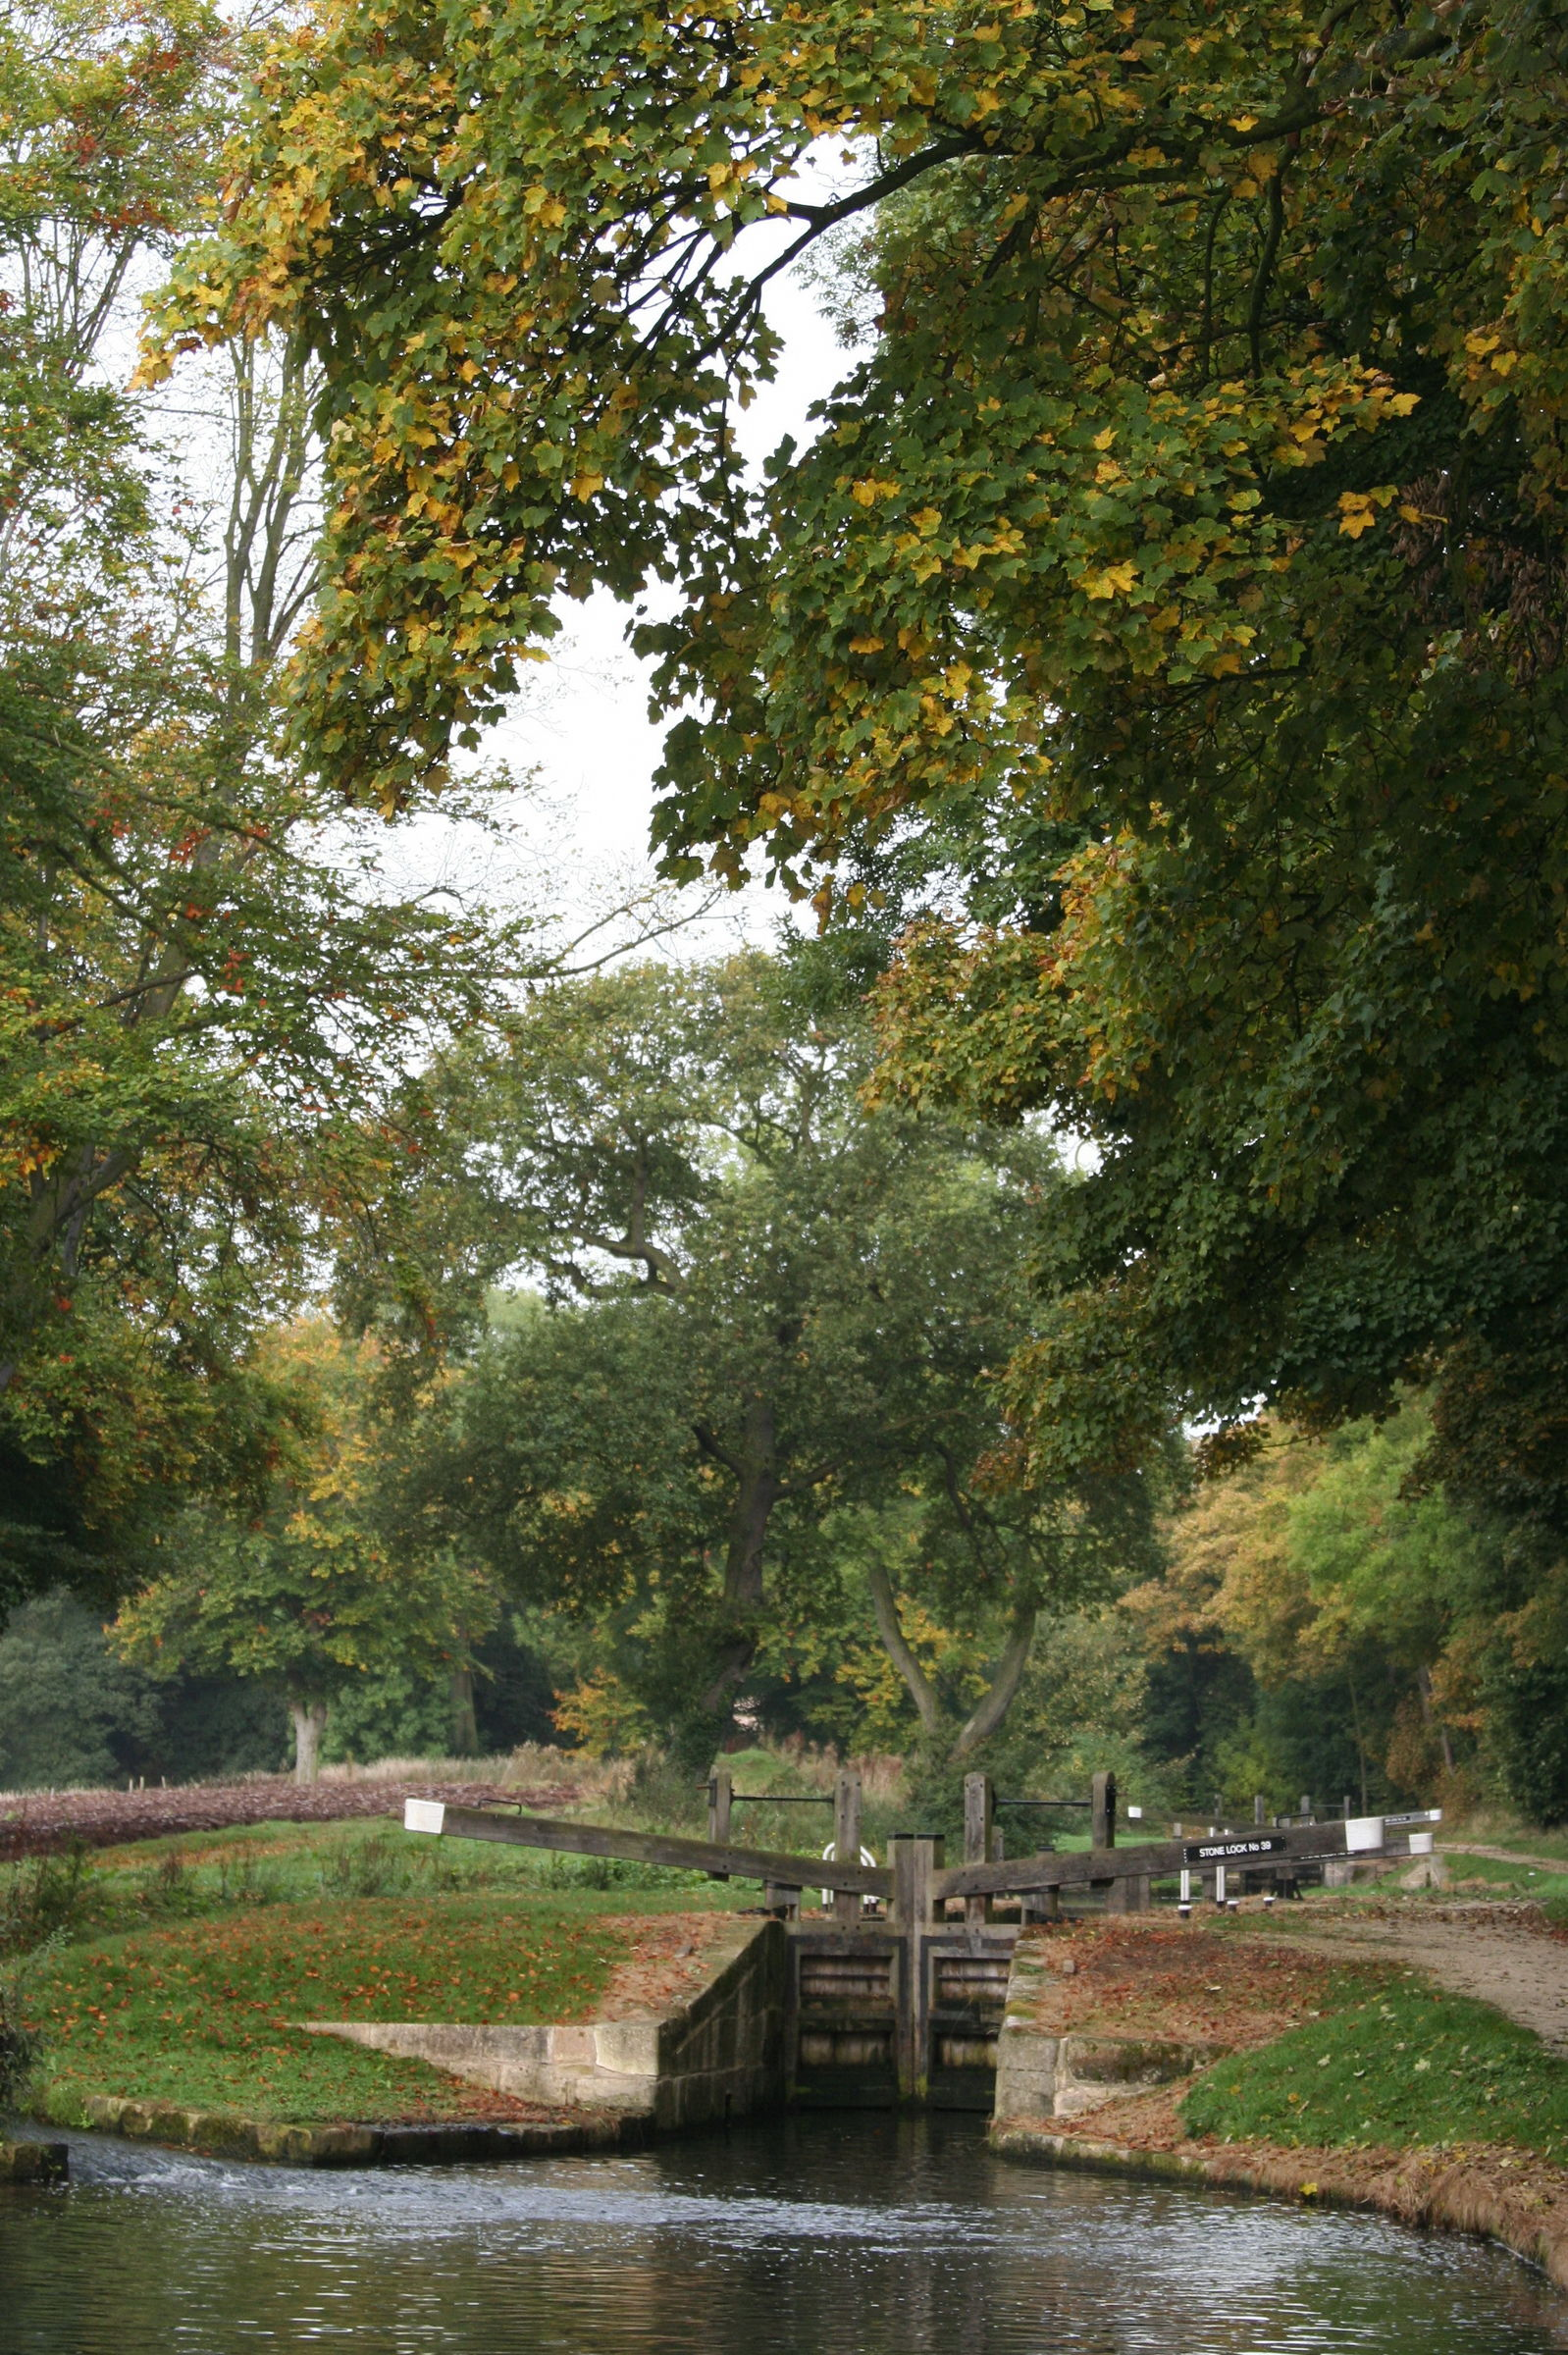 1151 Chesterfield Canal Stoke Lock 18th October 2005.jpg